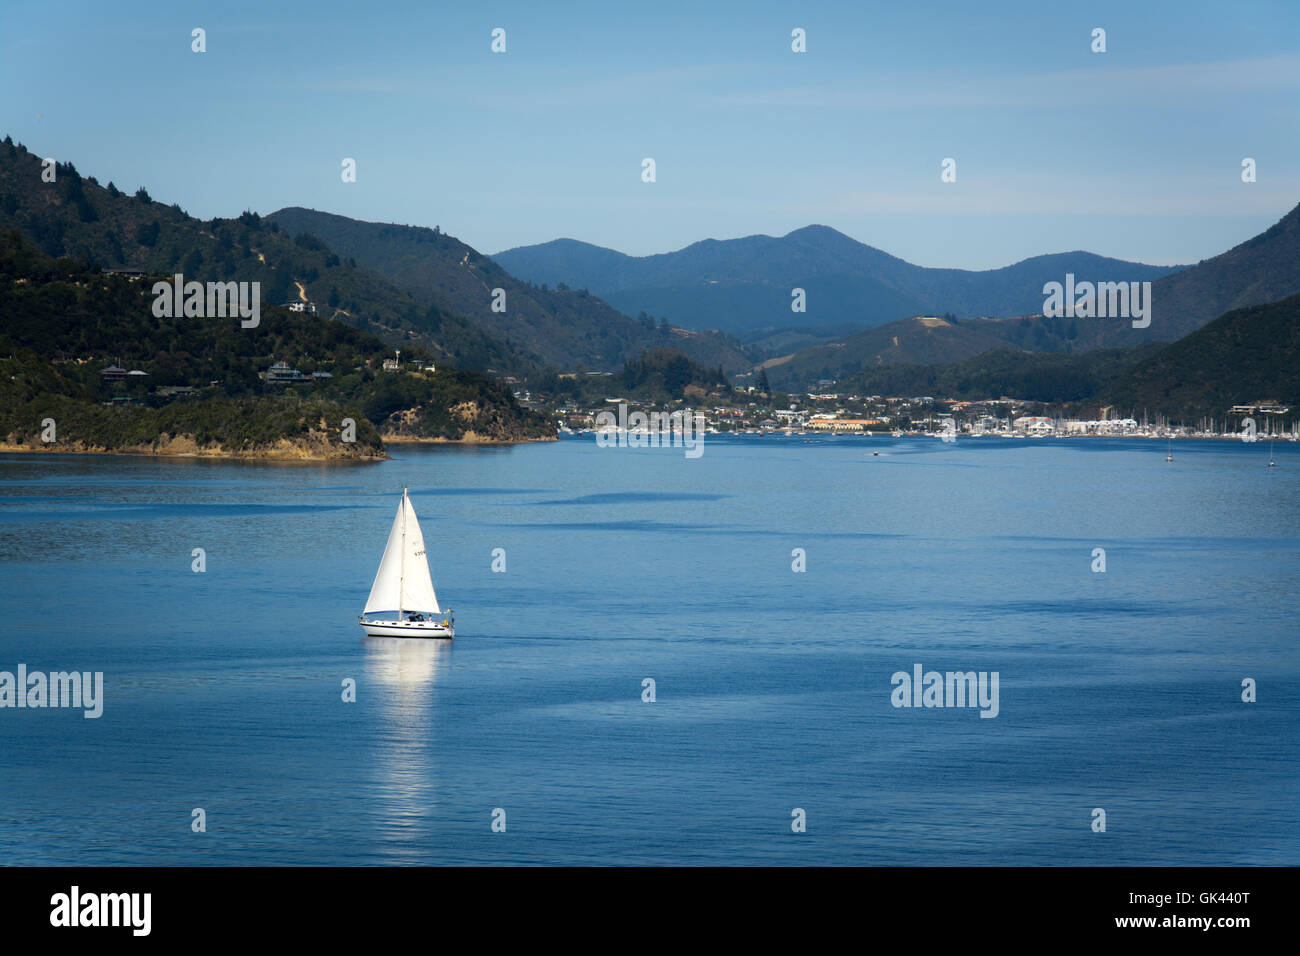 Port of Picton seen from ferry from Wellington to Picton, New Zealand Stock Photo